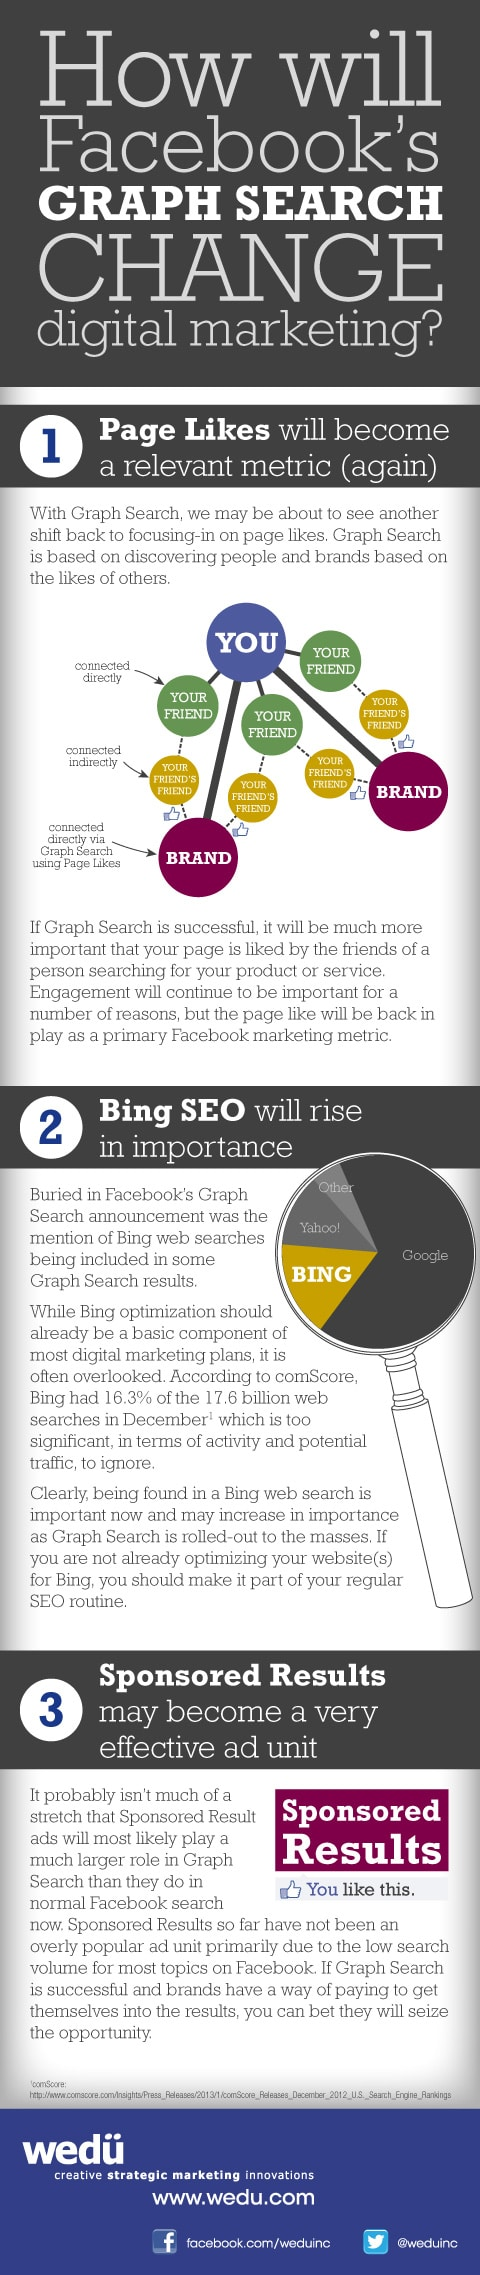 facebook-graph-search-benefits-infographic